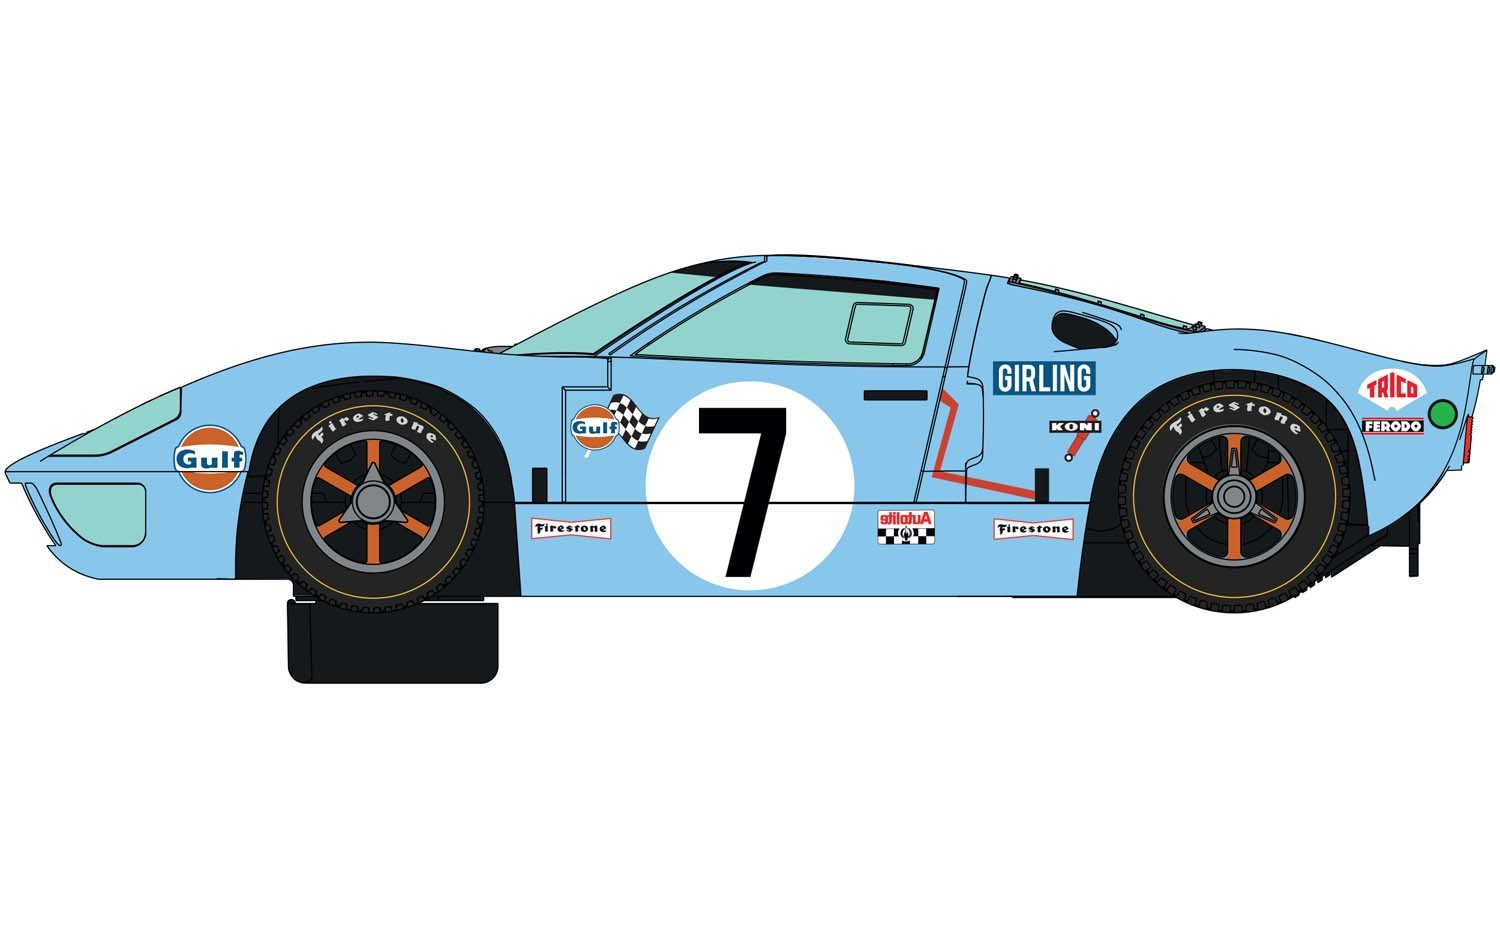 c4041a_1969-gulf-twin-pack_cars_gt40-gulf-no.7